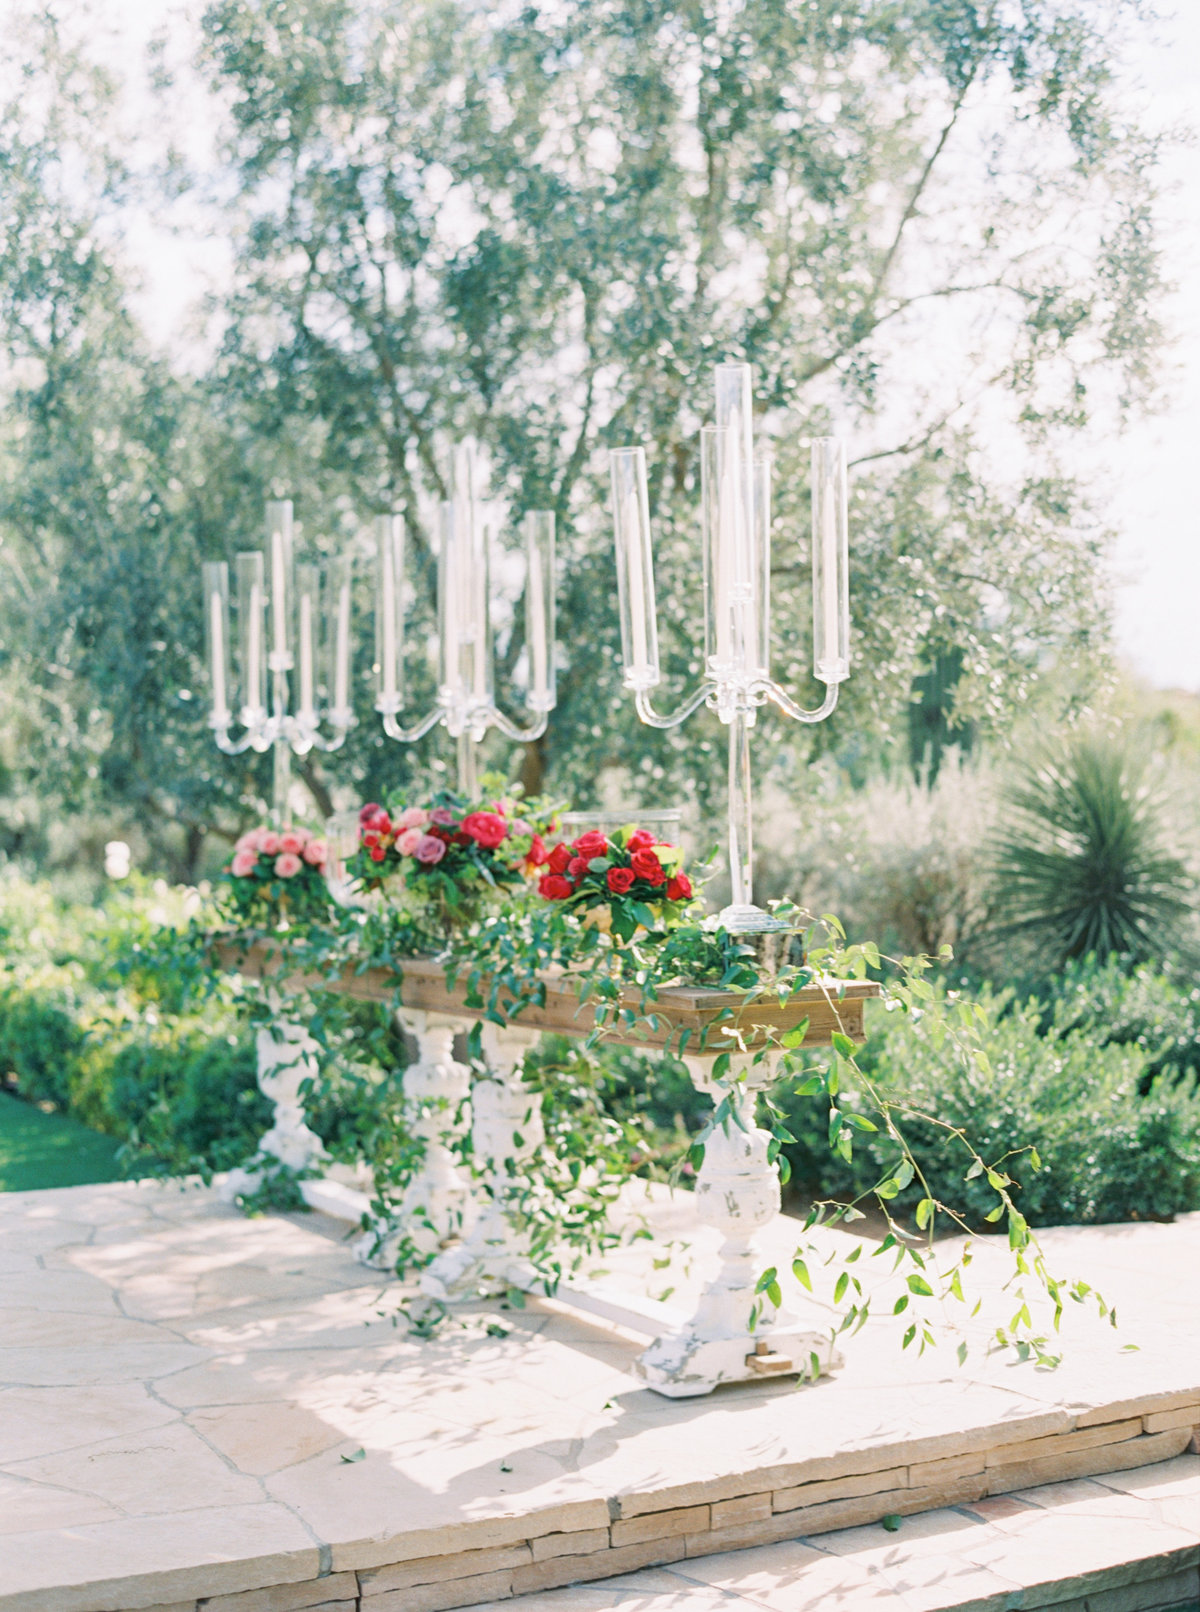 El chorro lodge El chorro wedding Lincoln road Paradise valley wedding Scottsdale wedding Mariee wedding gown Flower studio Glamour and wood Event rents Celebrations in paper Melissa jill photography Stephanie fay photography Flower studio florals A bake shop cake Arizona La tavola linens